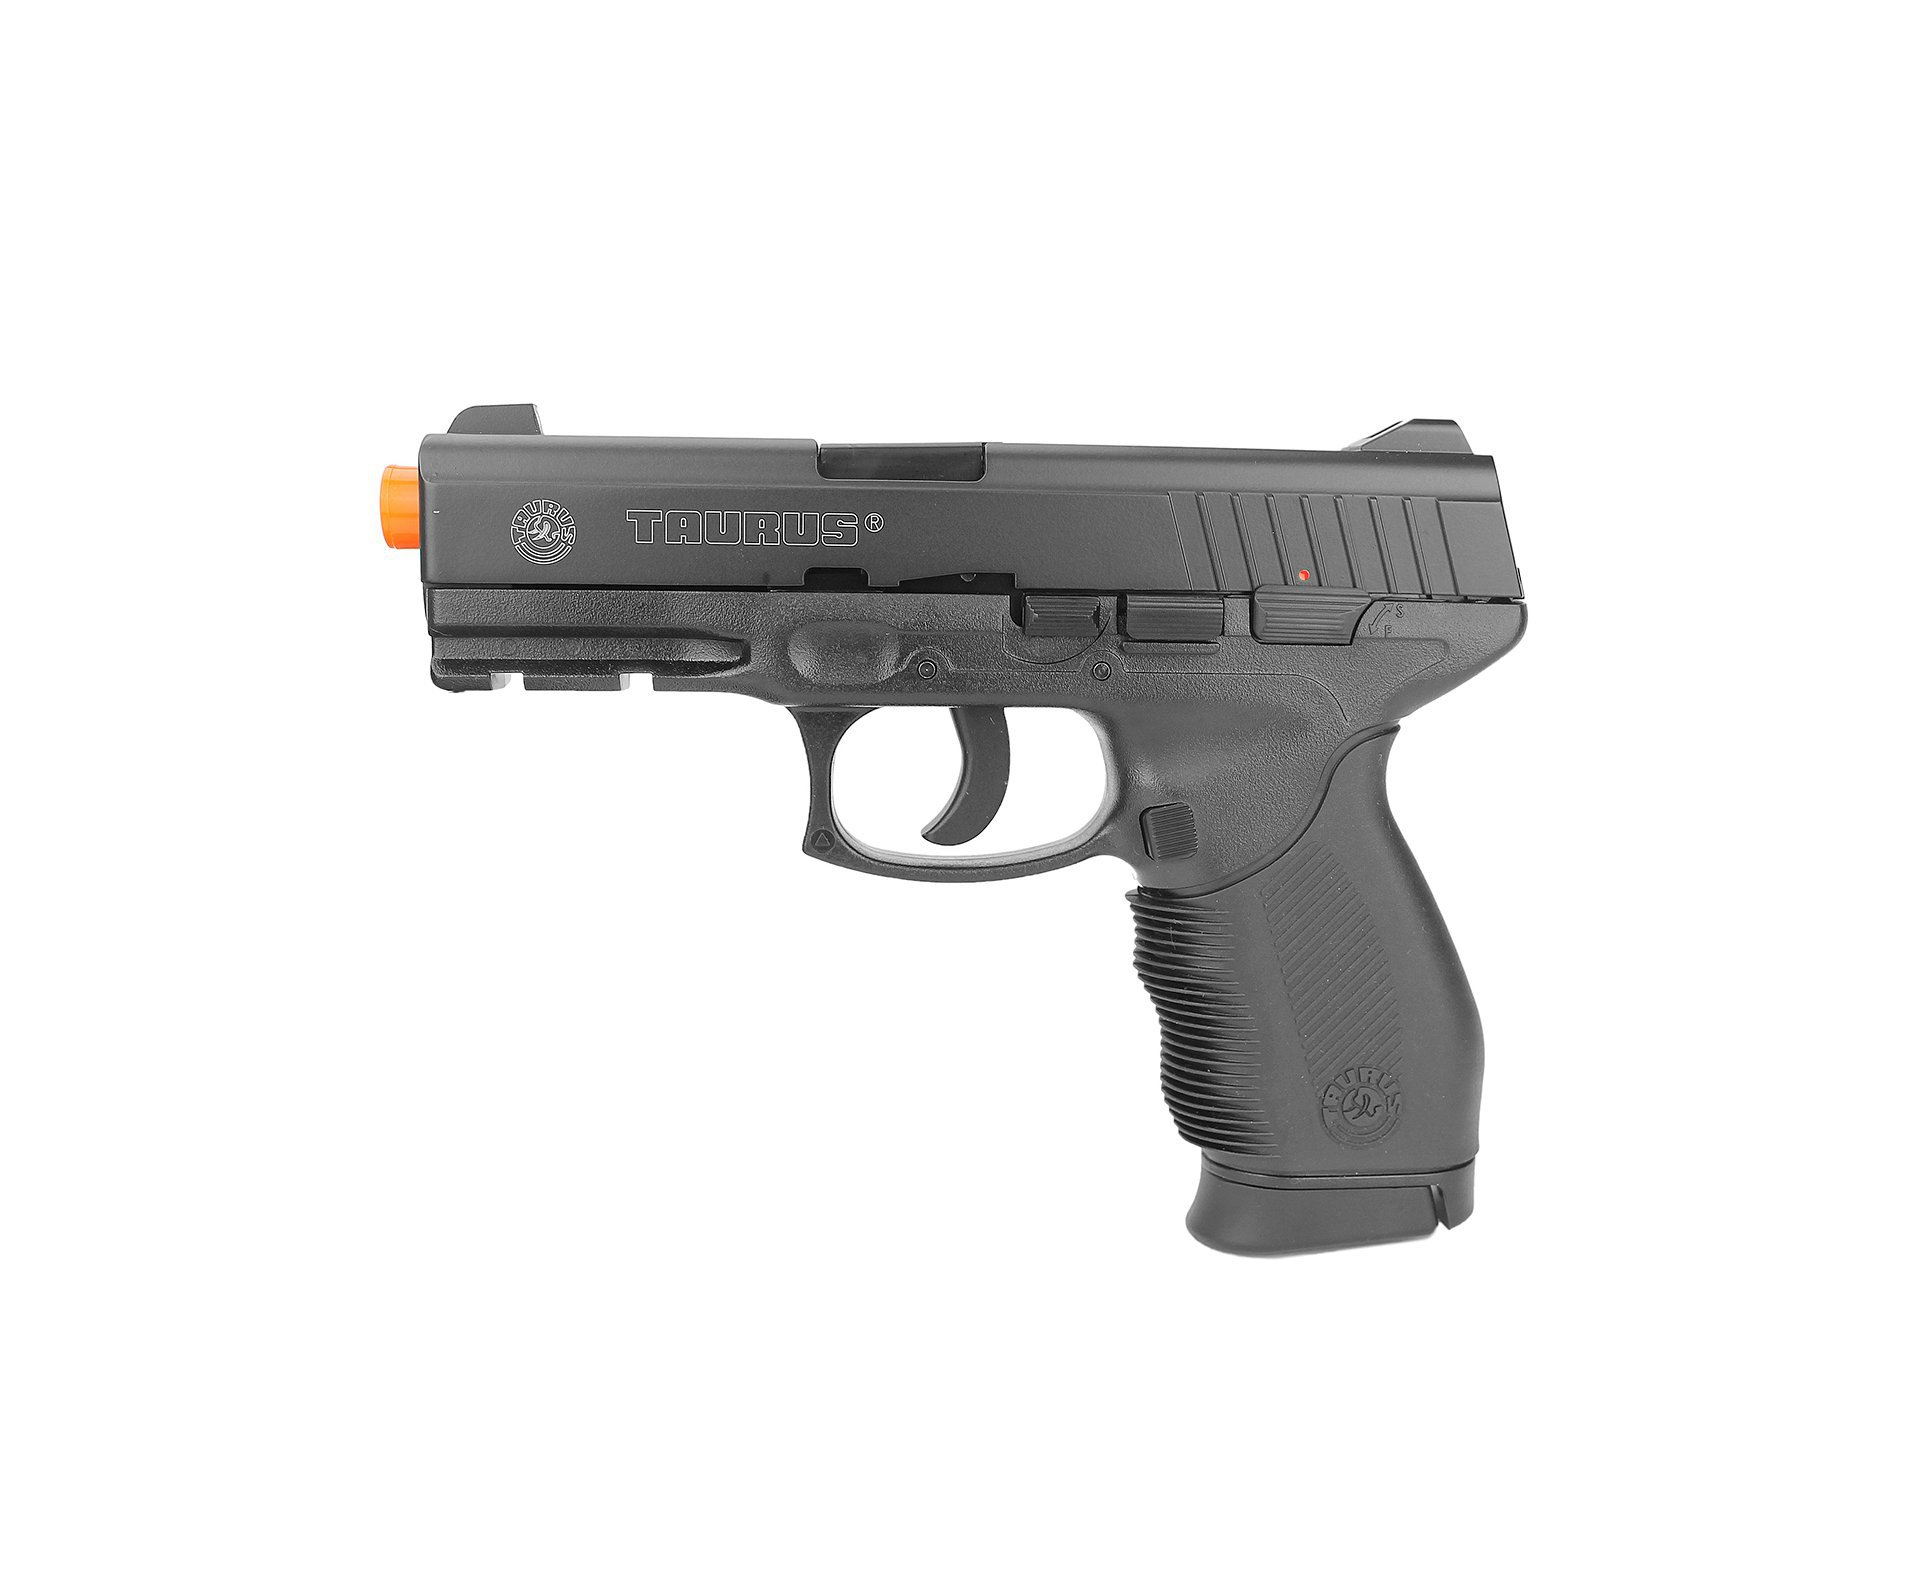 Pistola De Airsoft Gas Co2 Taurus Pt 24/7 Cal 6,0mm Cybergun